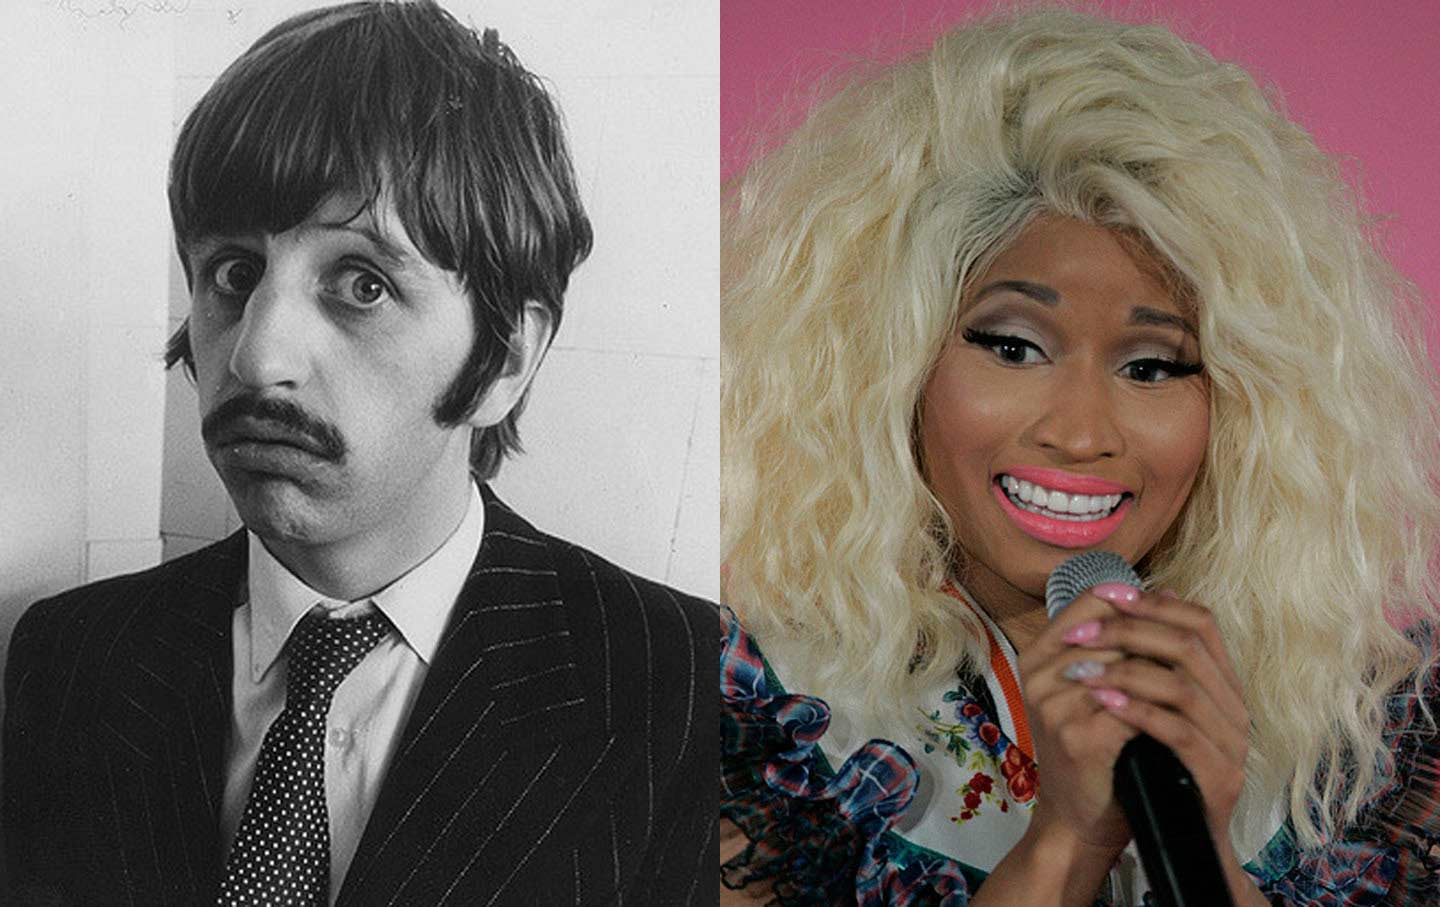 Starr and Minaj